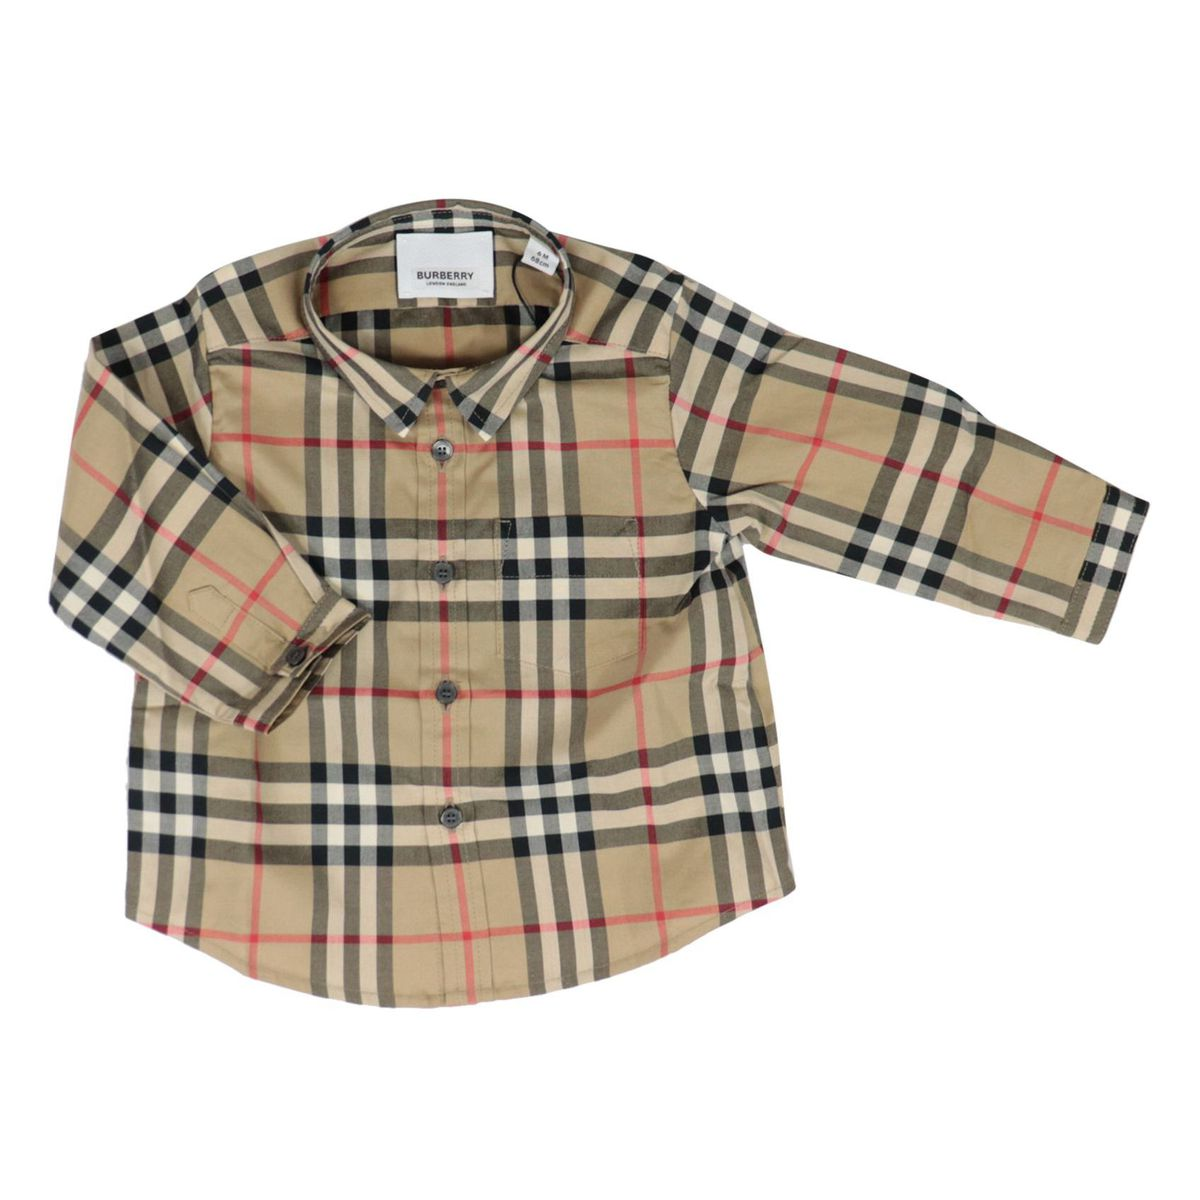 Fredrick long-sleeved shirt in cotton with check pattern Beige check Burberry